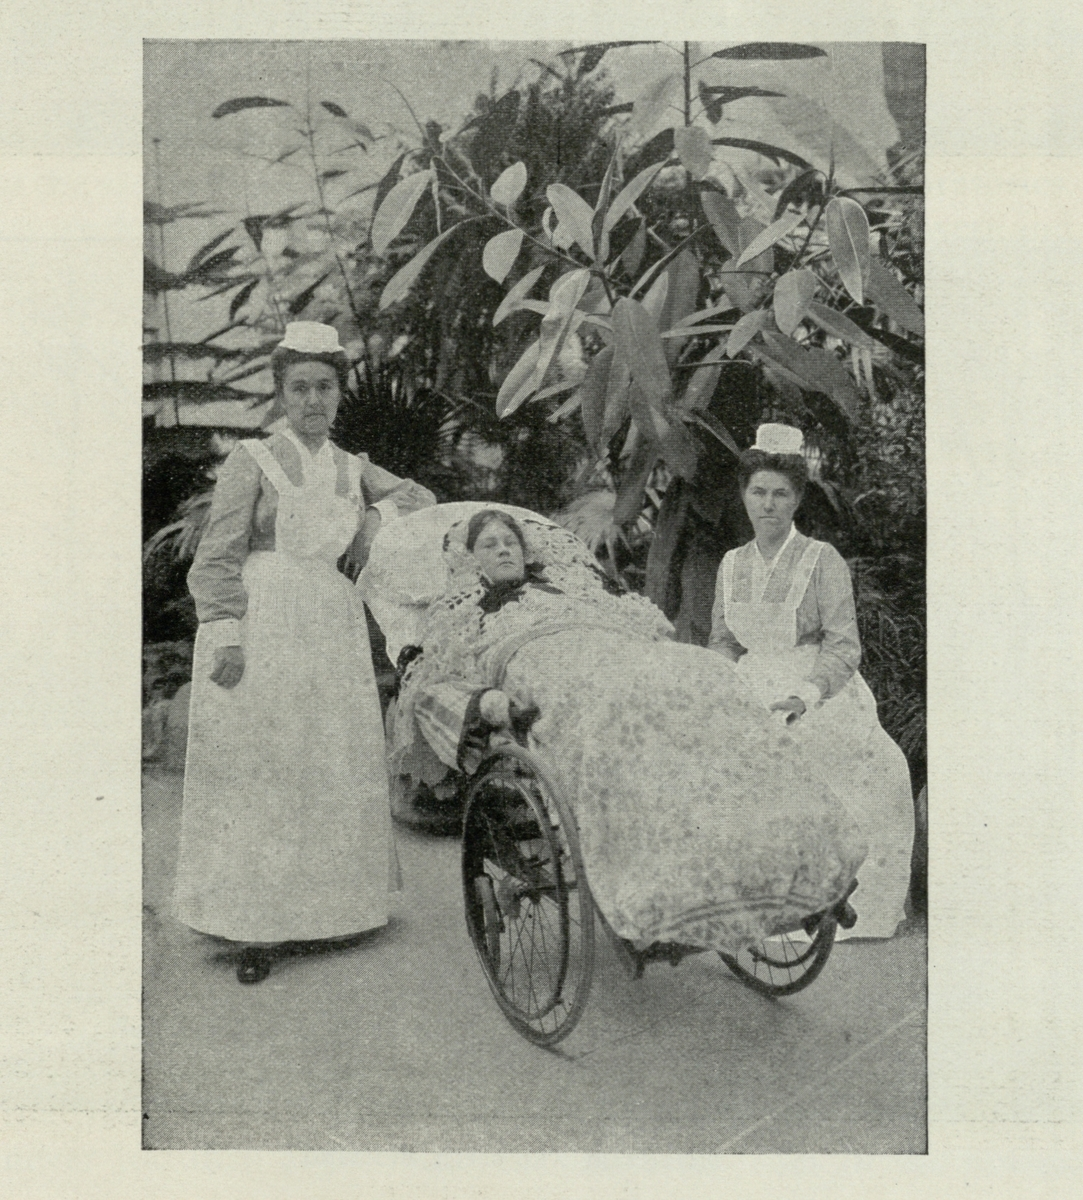 [Attendants and a Patient]